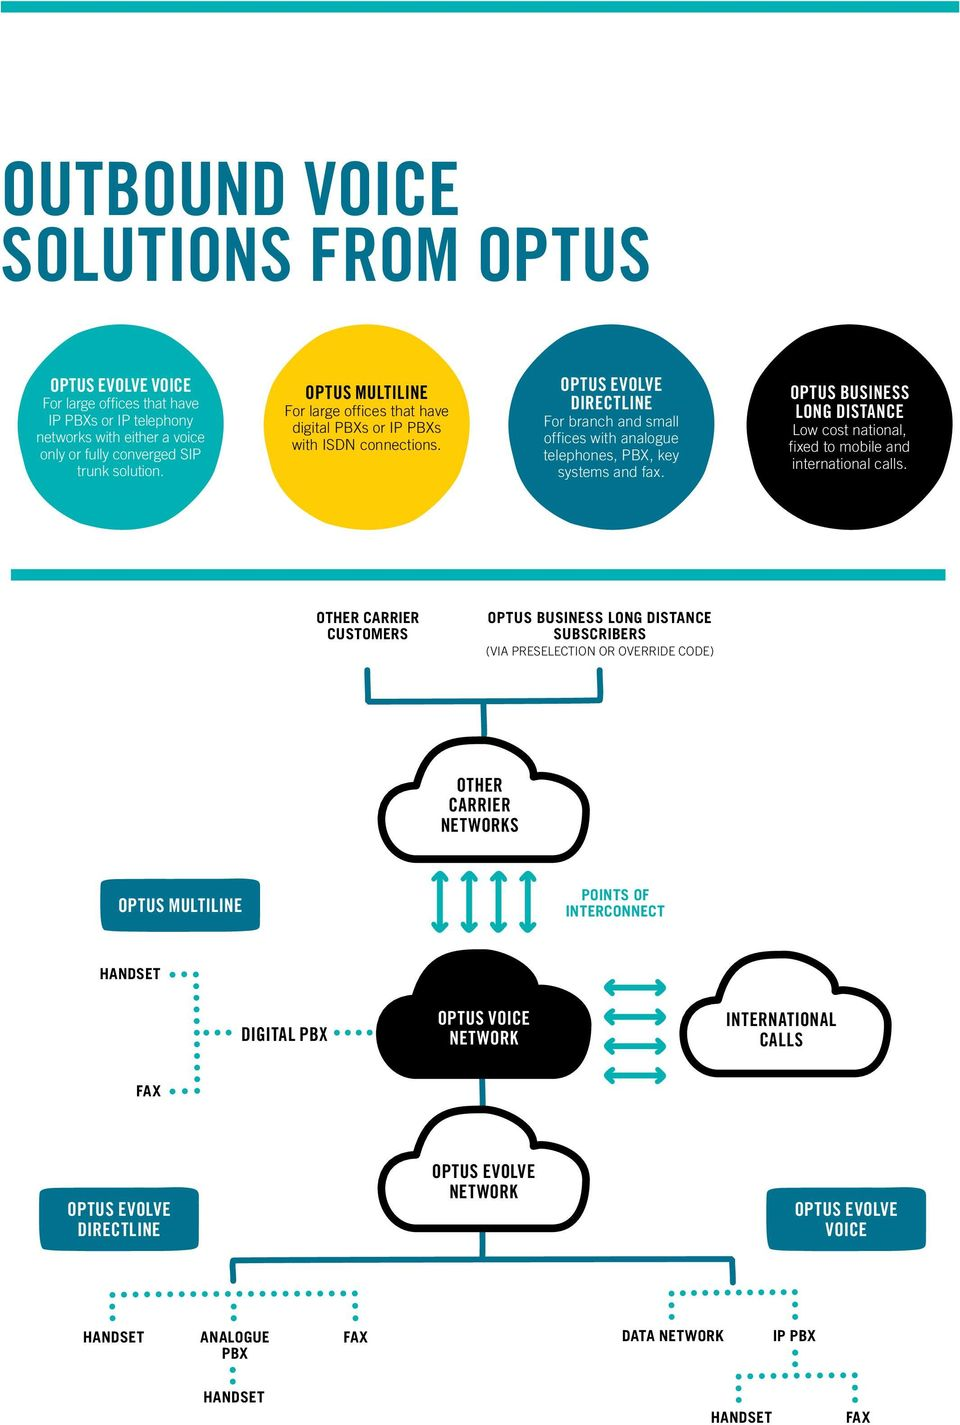 OPTUS BUSINESS LONG DISTANCE Low cost national, fixed to mobile and international calls.